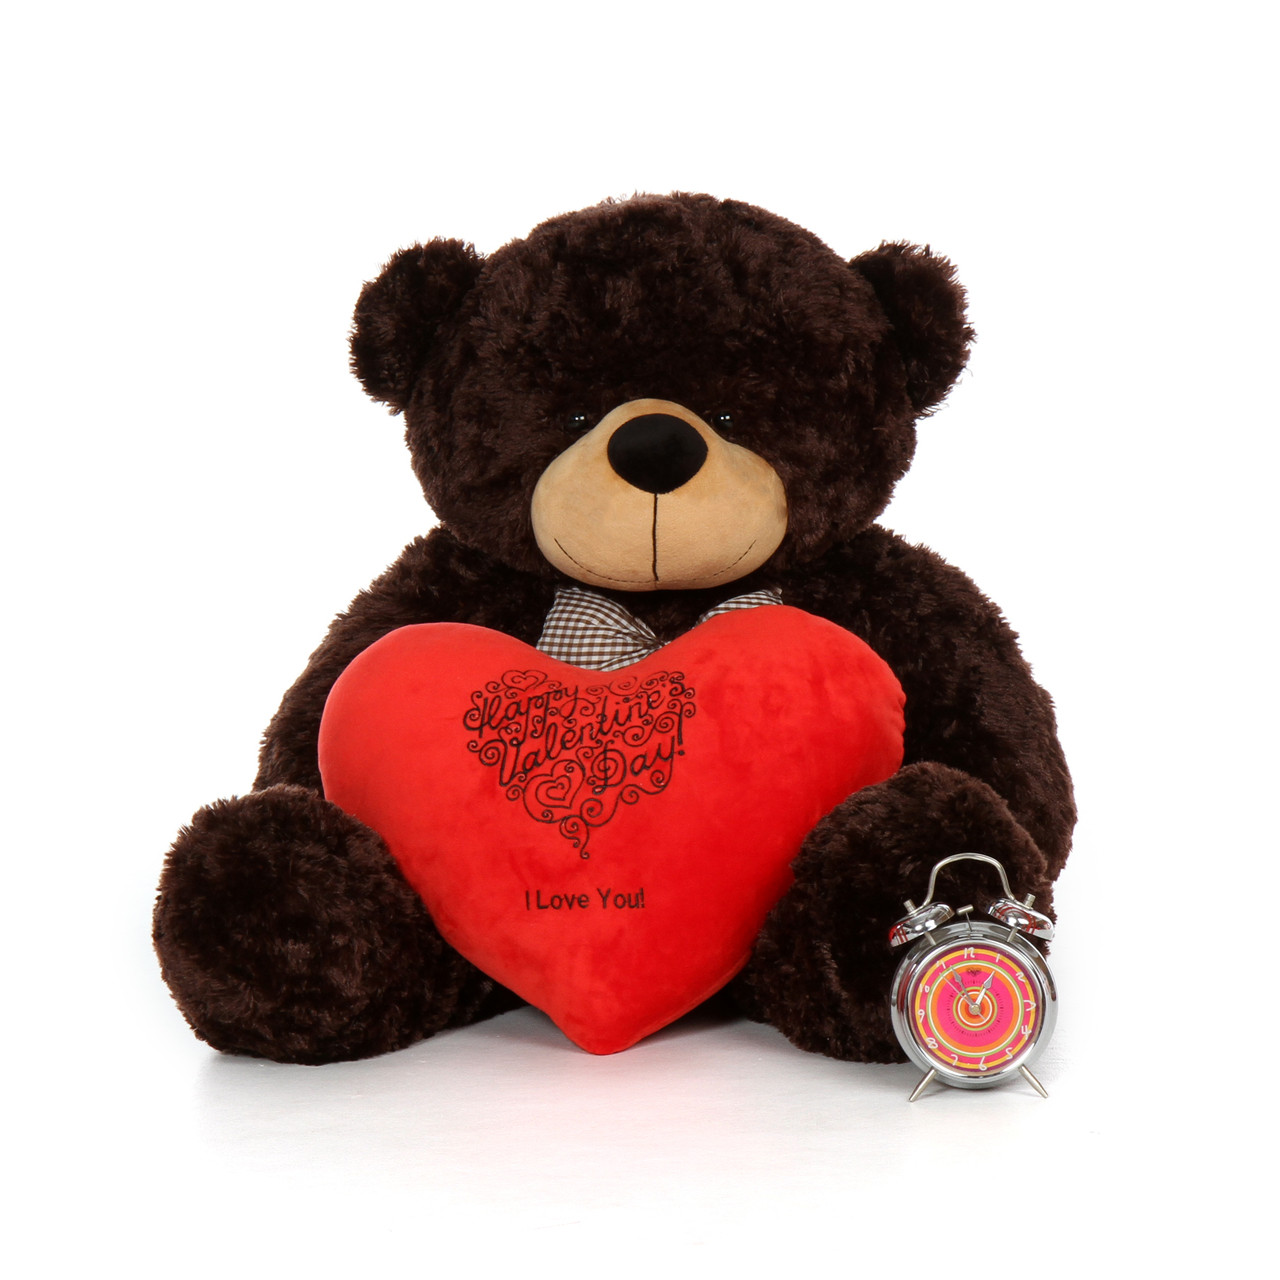 38in happy valentines day i love you teddy bear chocolate brownie cuddles with plush red heart pillow - Giant Teddy Bears For Valentines Day